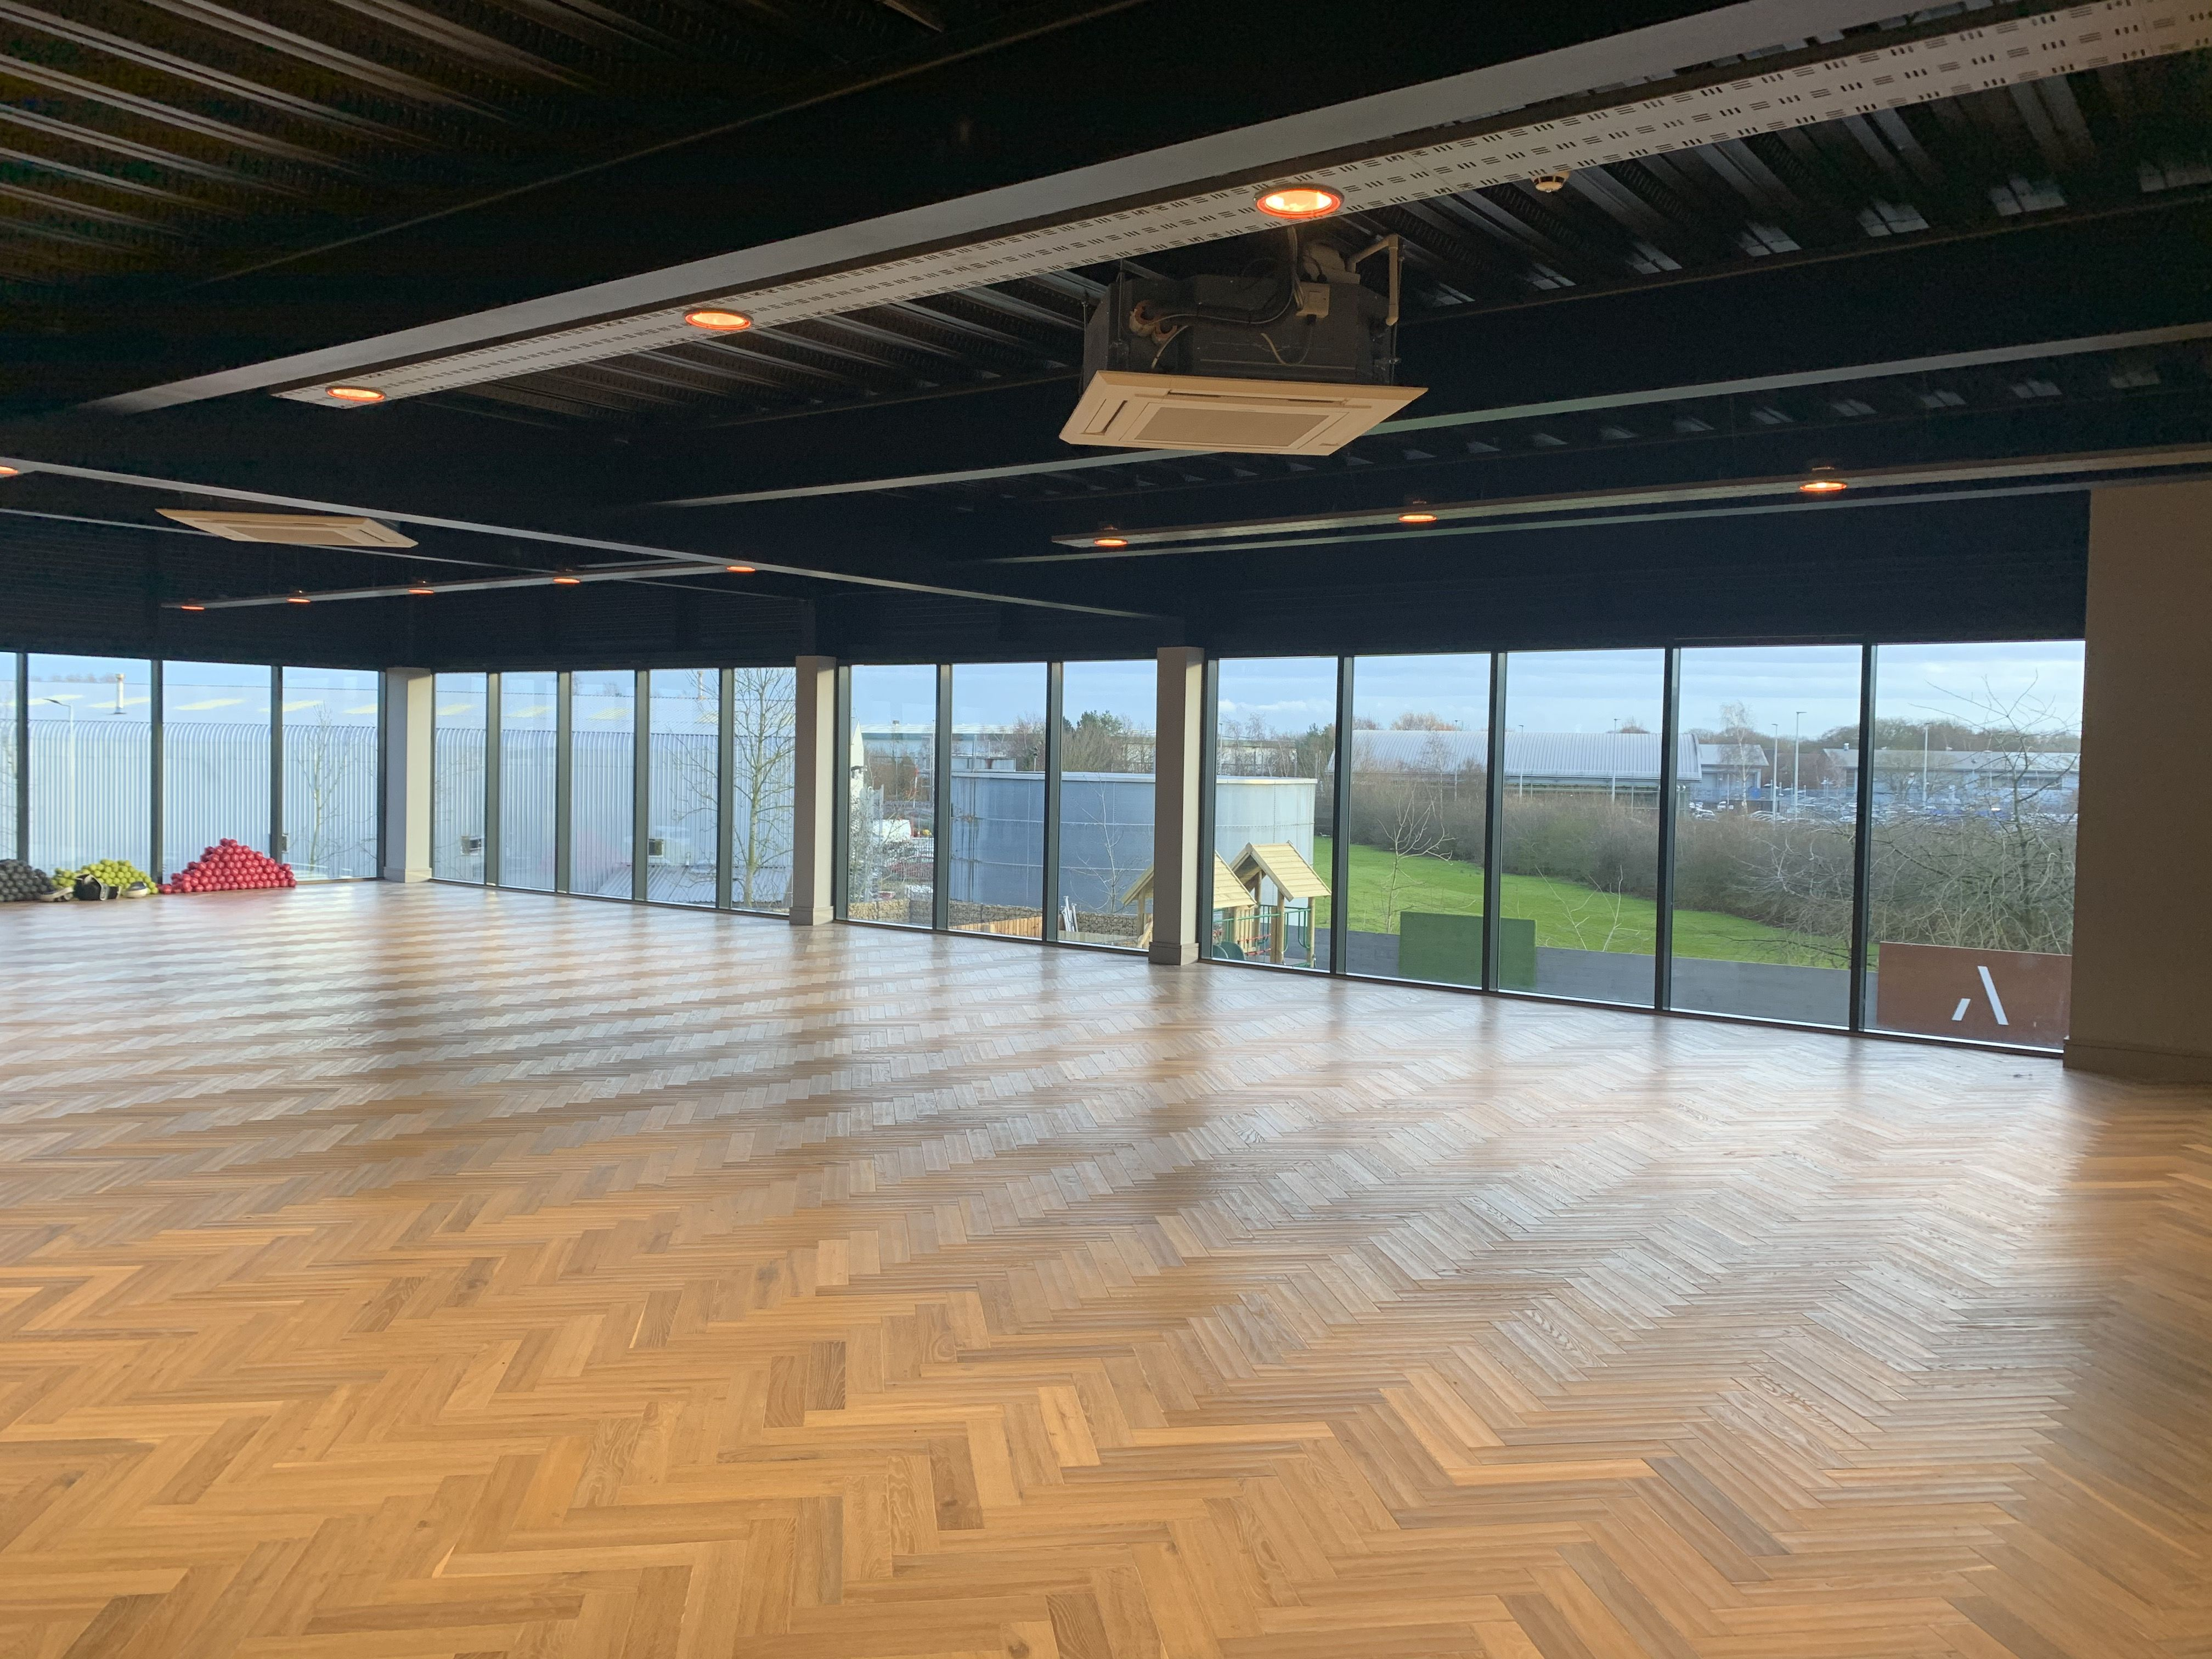 Athelis Lighting Controls Installed by Intecho Gym